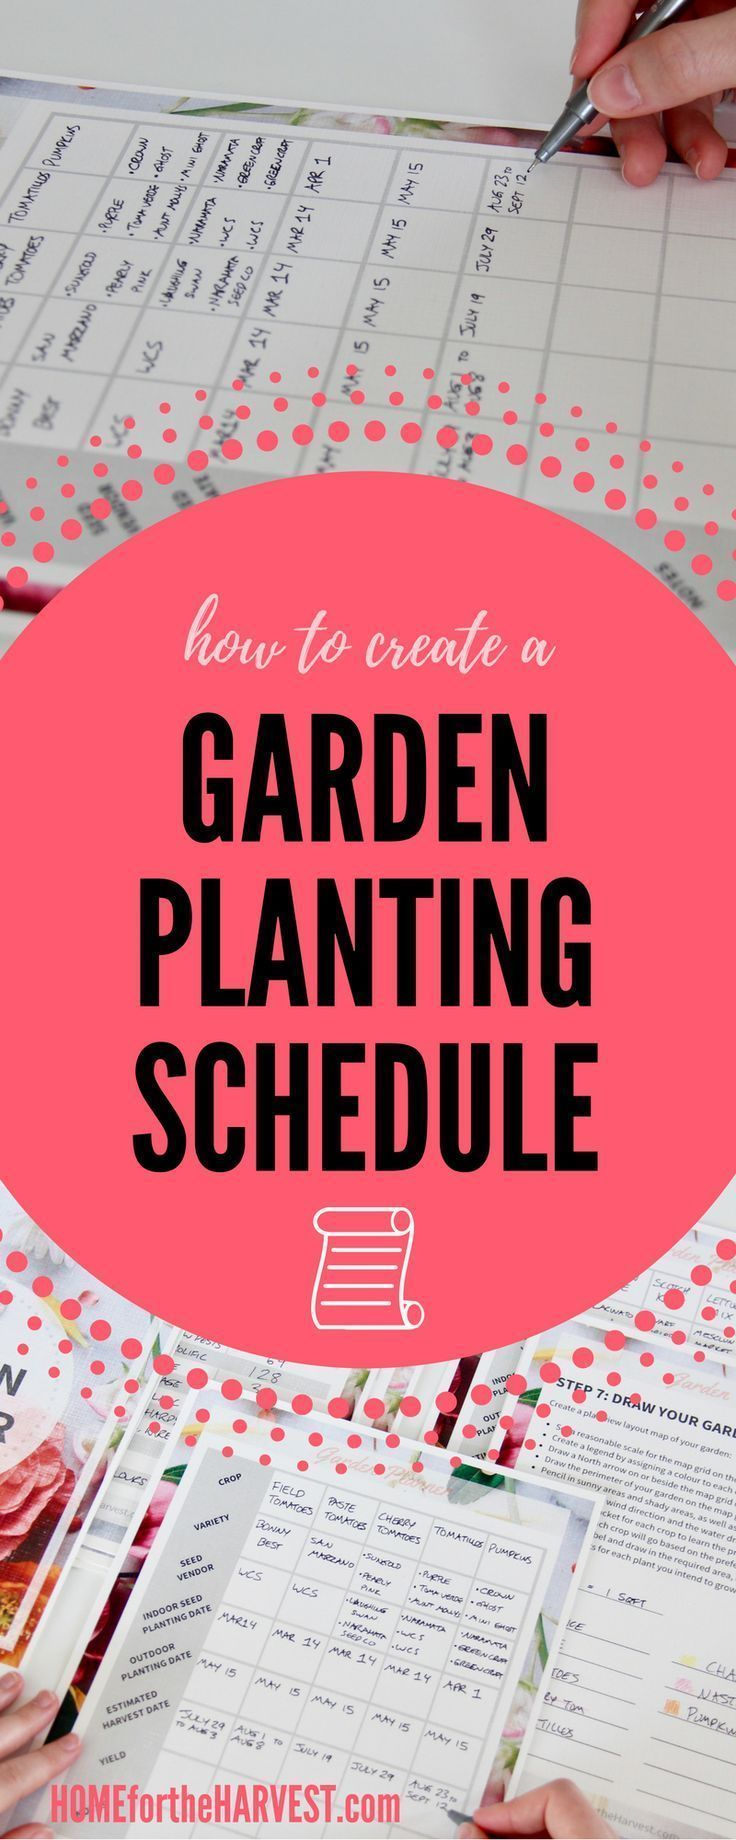 Creating a planting schedule for your garden will help you take out all the guesswork about when to plant your garden! Create a calendar for your plants to go outdoors, and watch the weather to ensure everything is on track! This post will show you exactly how to create a schedule for your garden, and even includes a free garden planner!